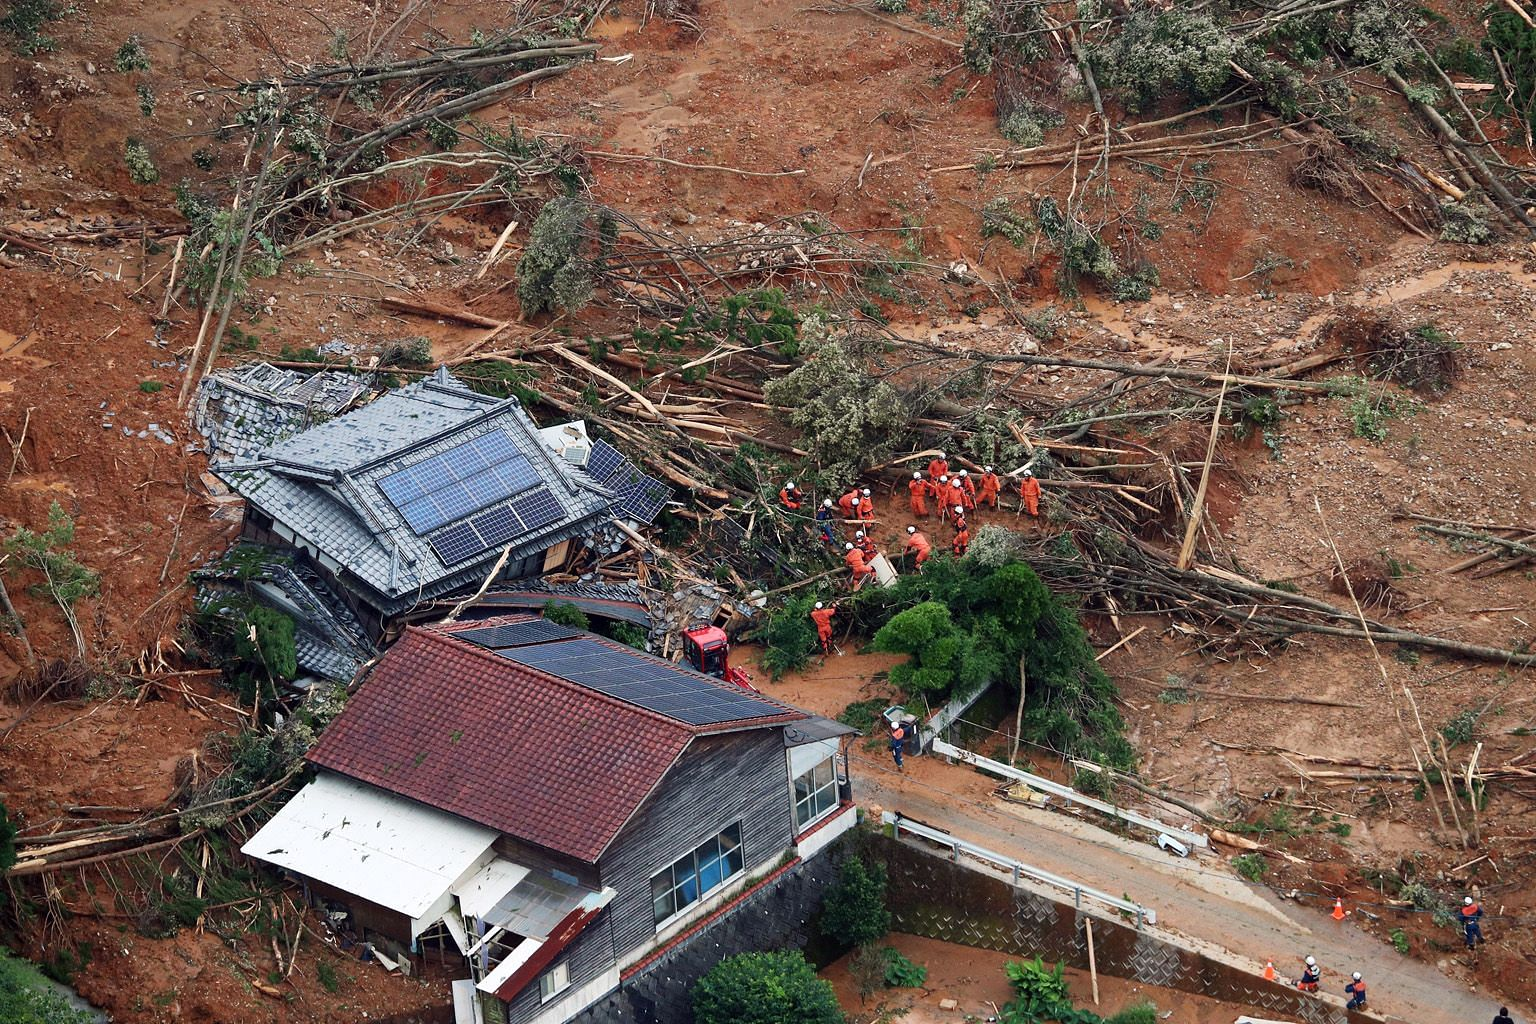 Rescue operations being carried out at a collapsed house in Ashikita town in Kumamoto prefecture, south-western Japan, on Saturday. PHOTO: EPA-EFE